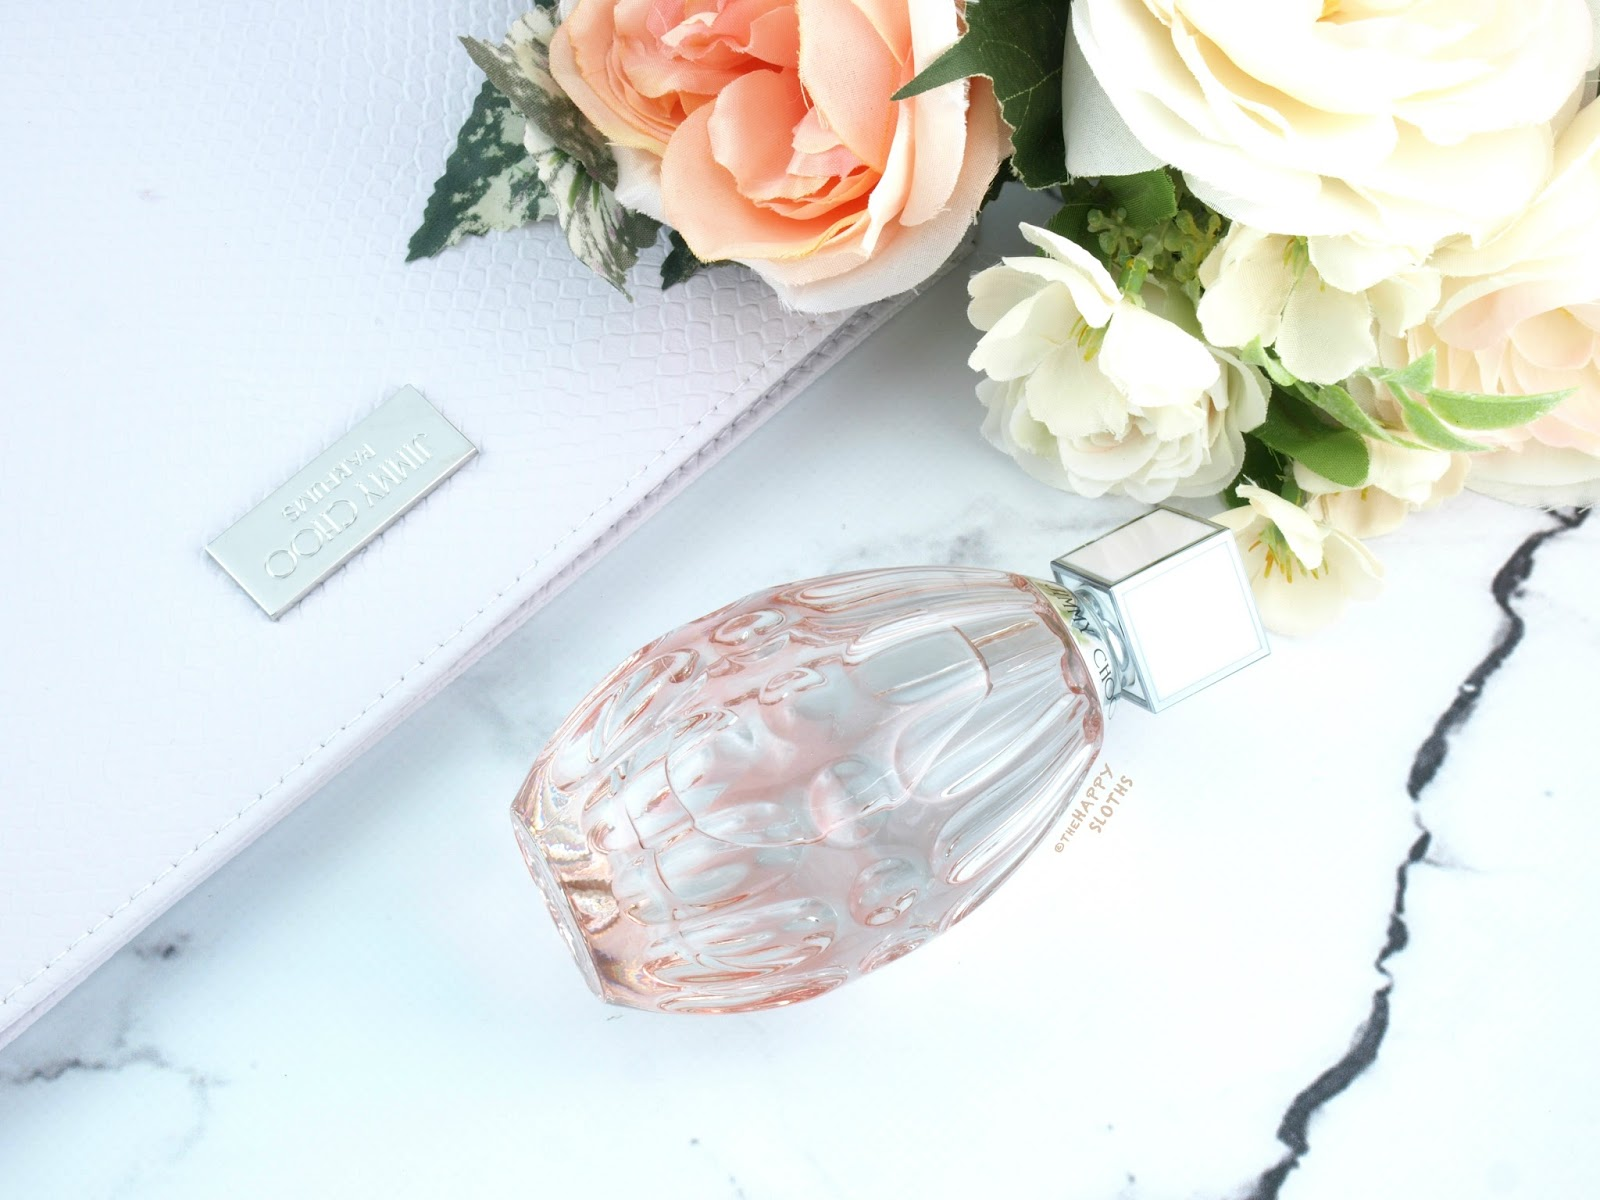 Jimmy Choo L'EAU Eau de Parfum: Review